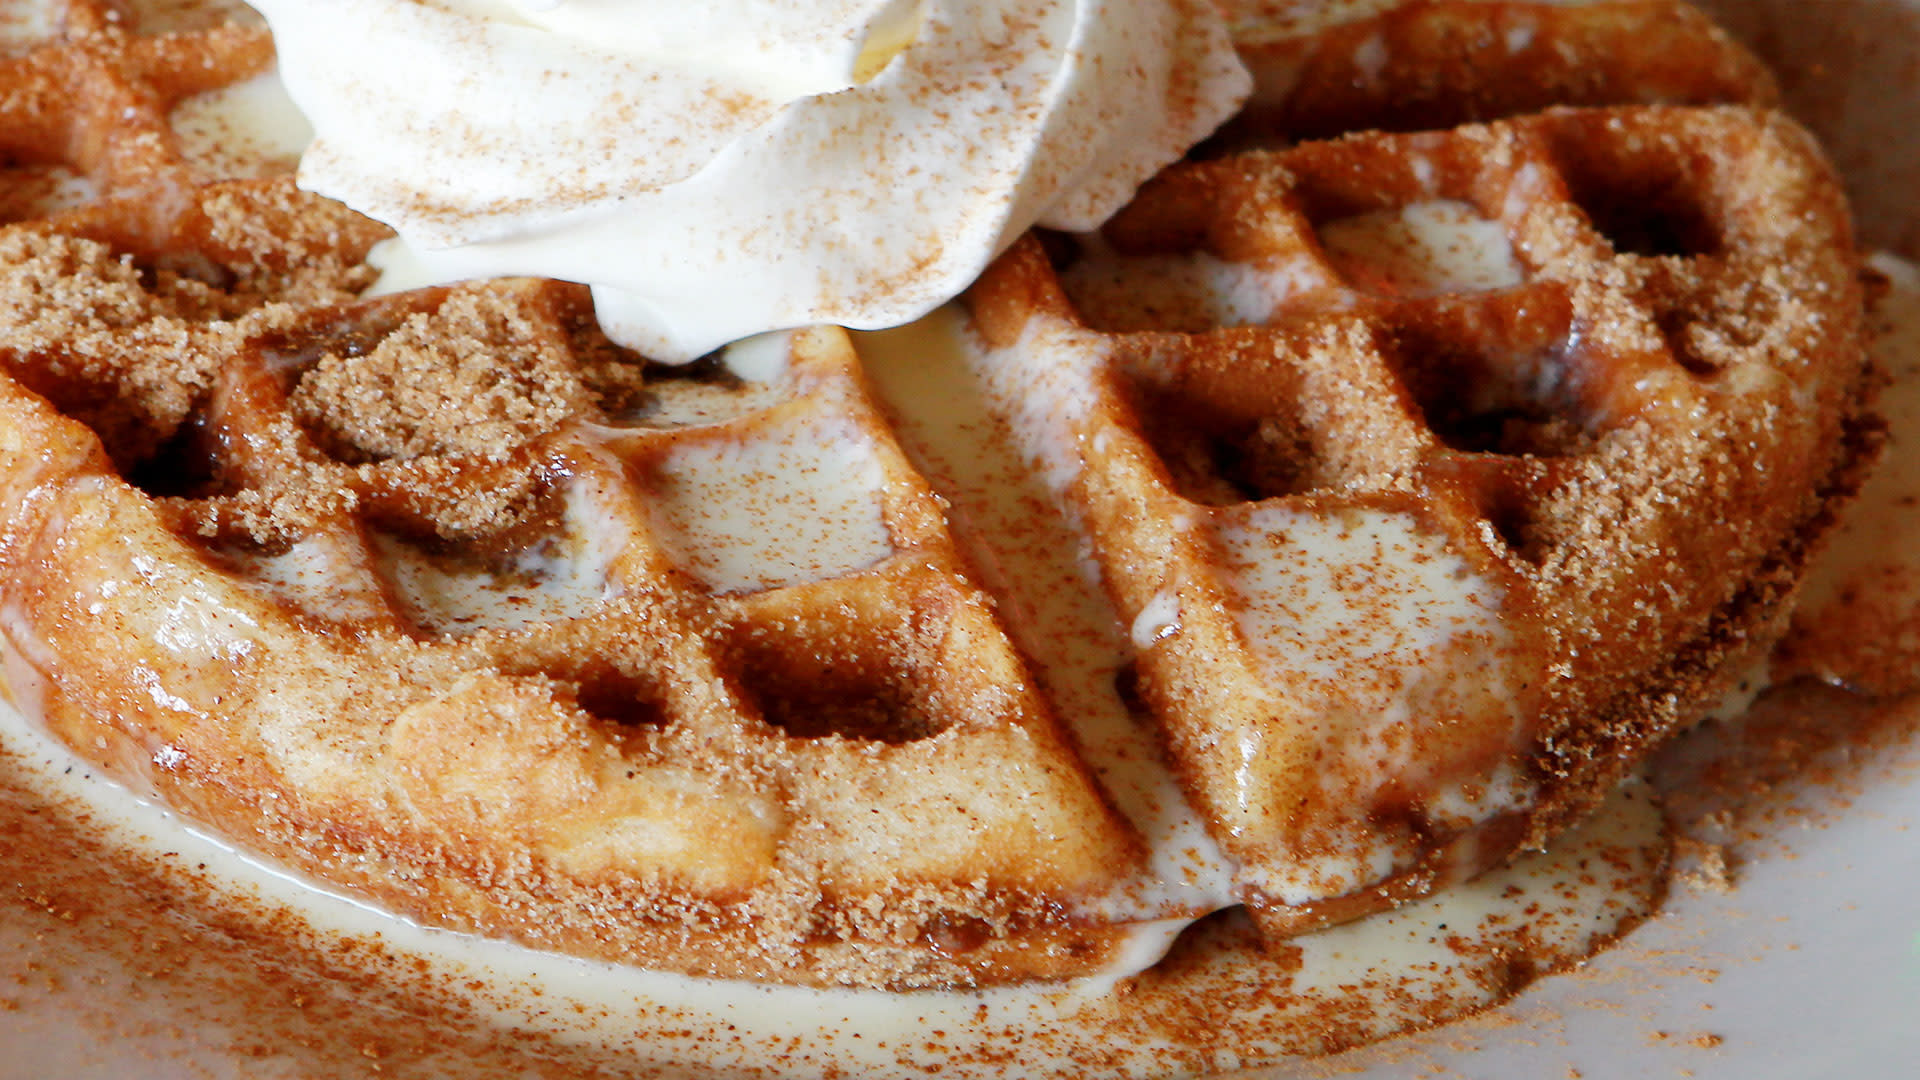 wilma and friedas churro waffle